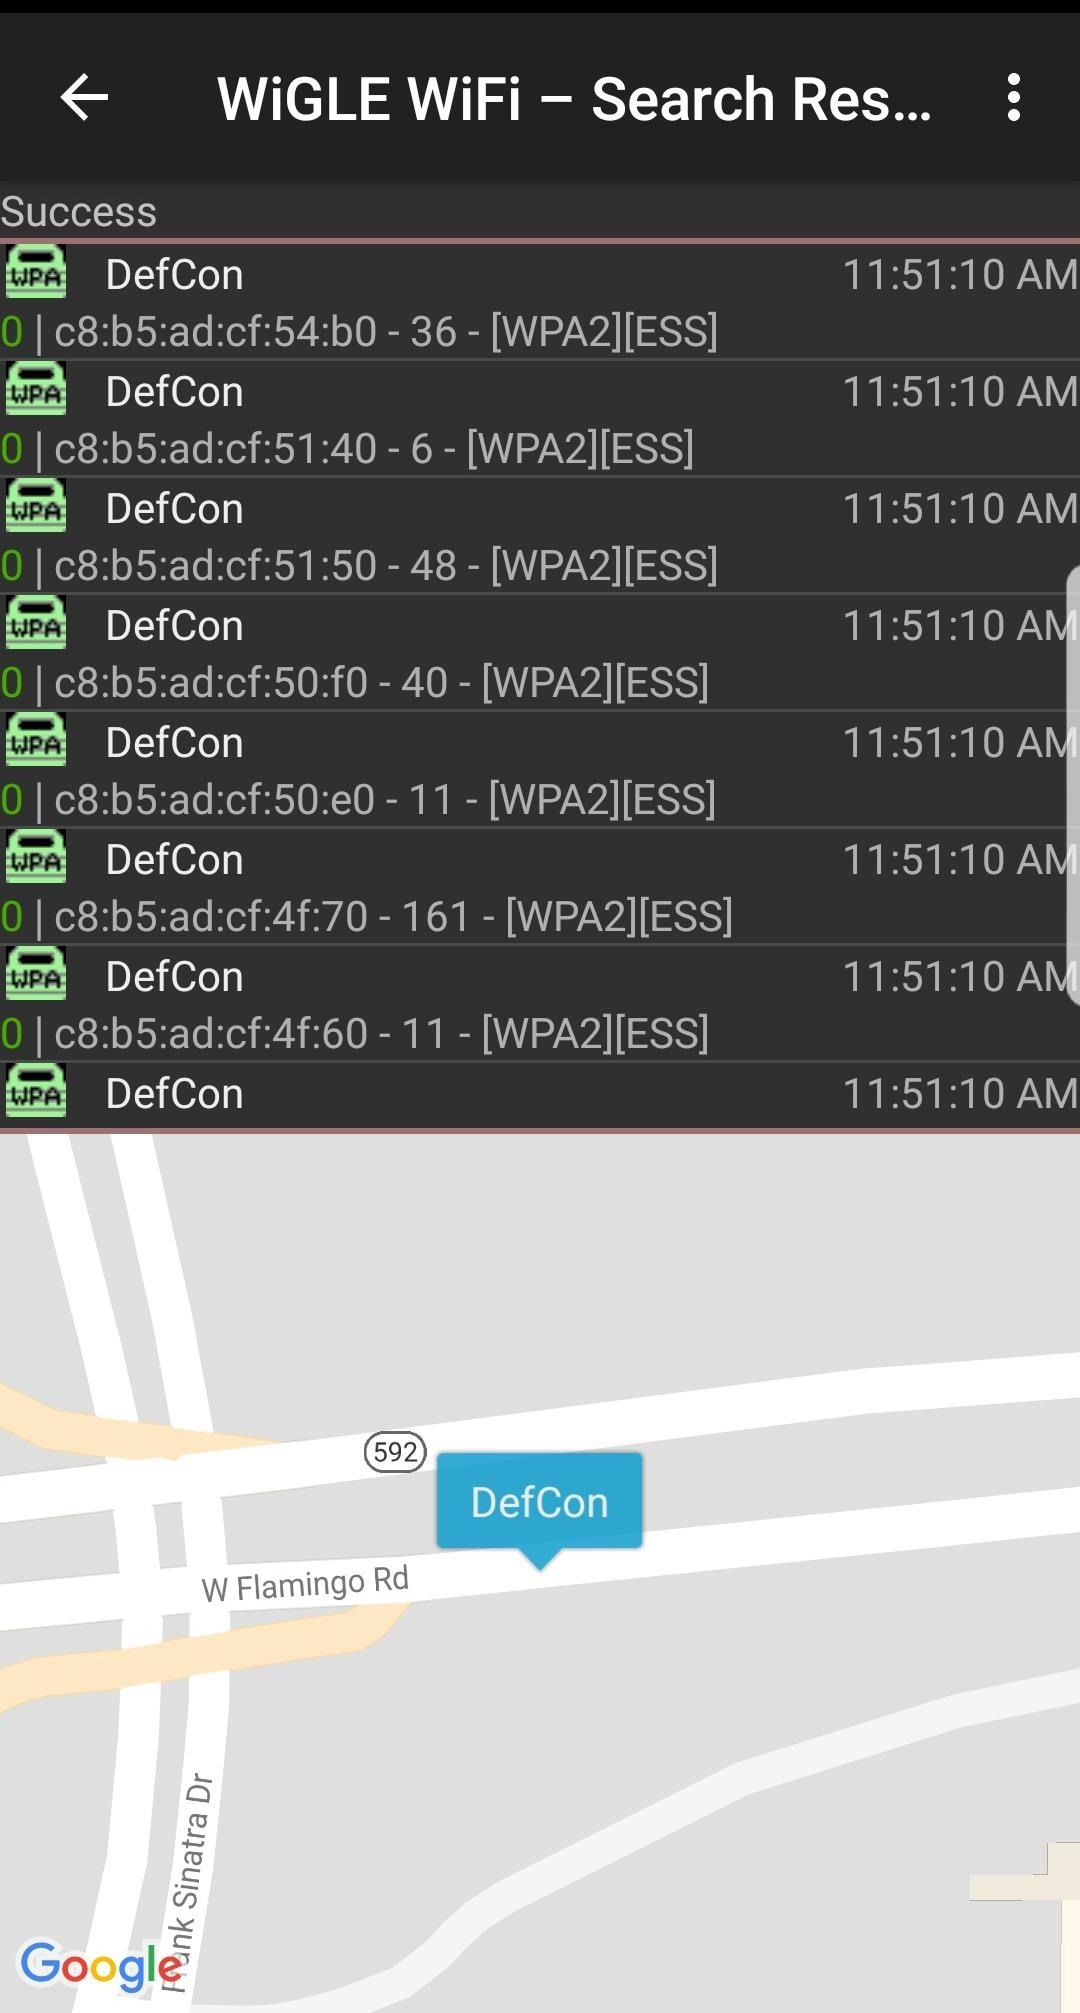 How to Wardrive on an Android Phone to Map Vulnerable Networks